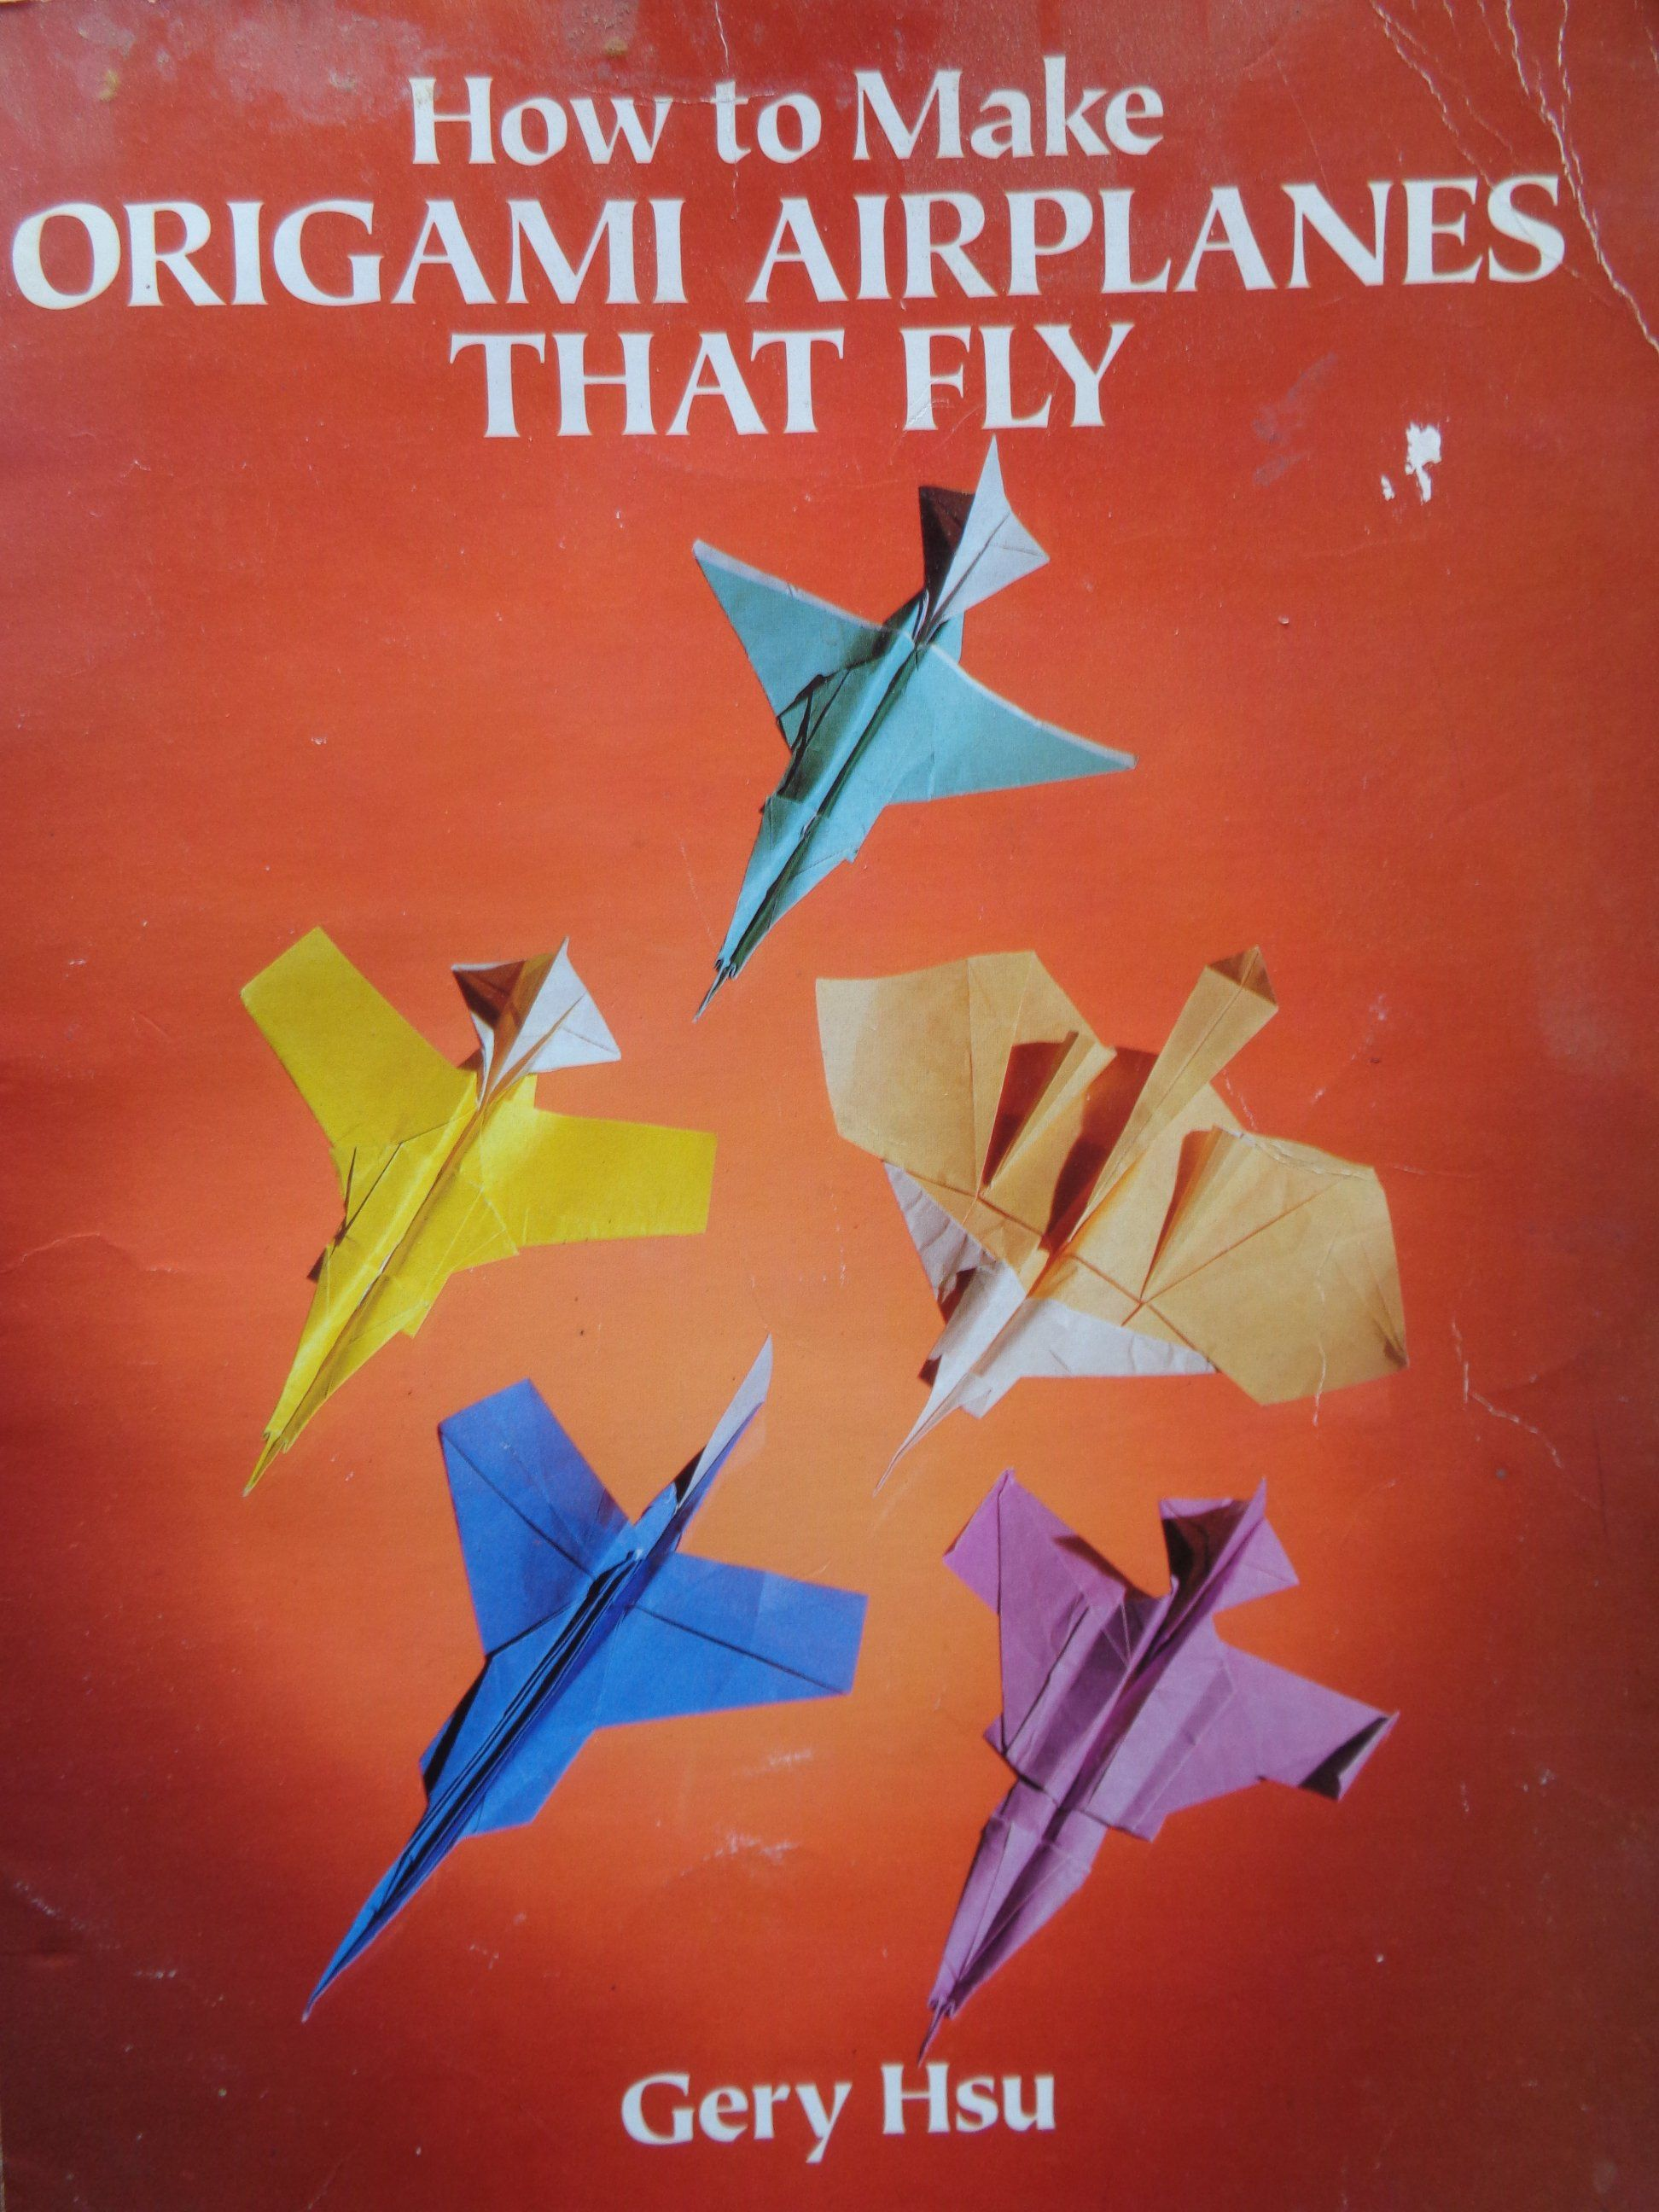 How To Make Origami Airplanes That Fly By Gery Hsu Origami Airplane Origami How To Make Origami